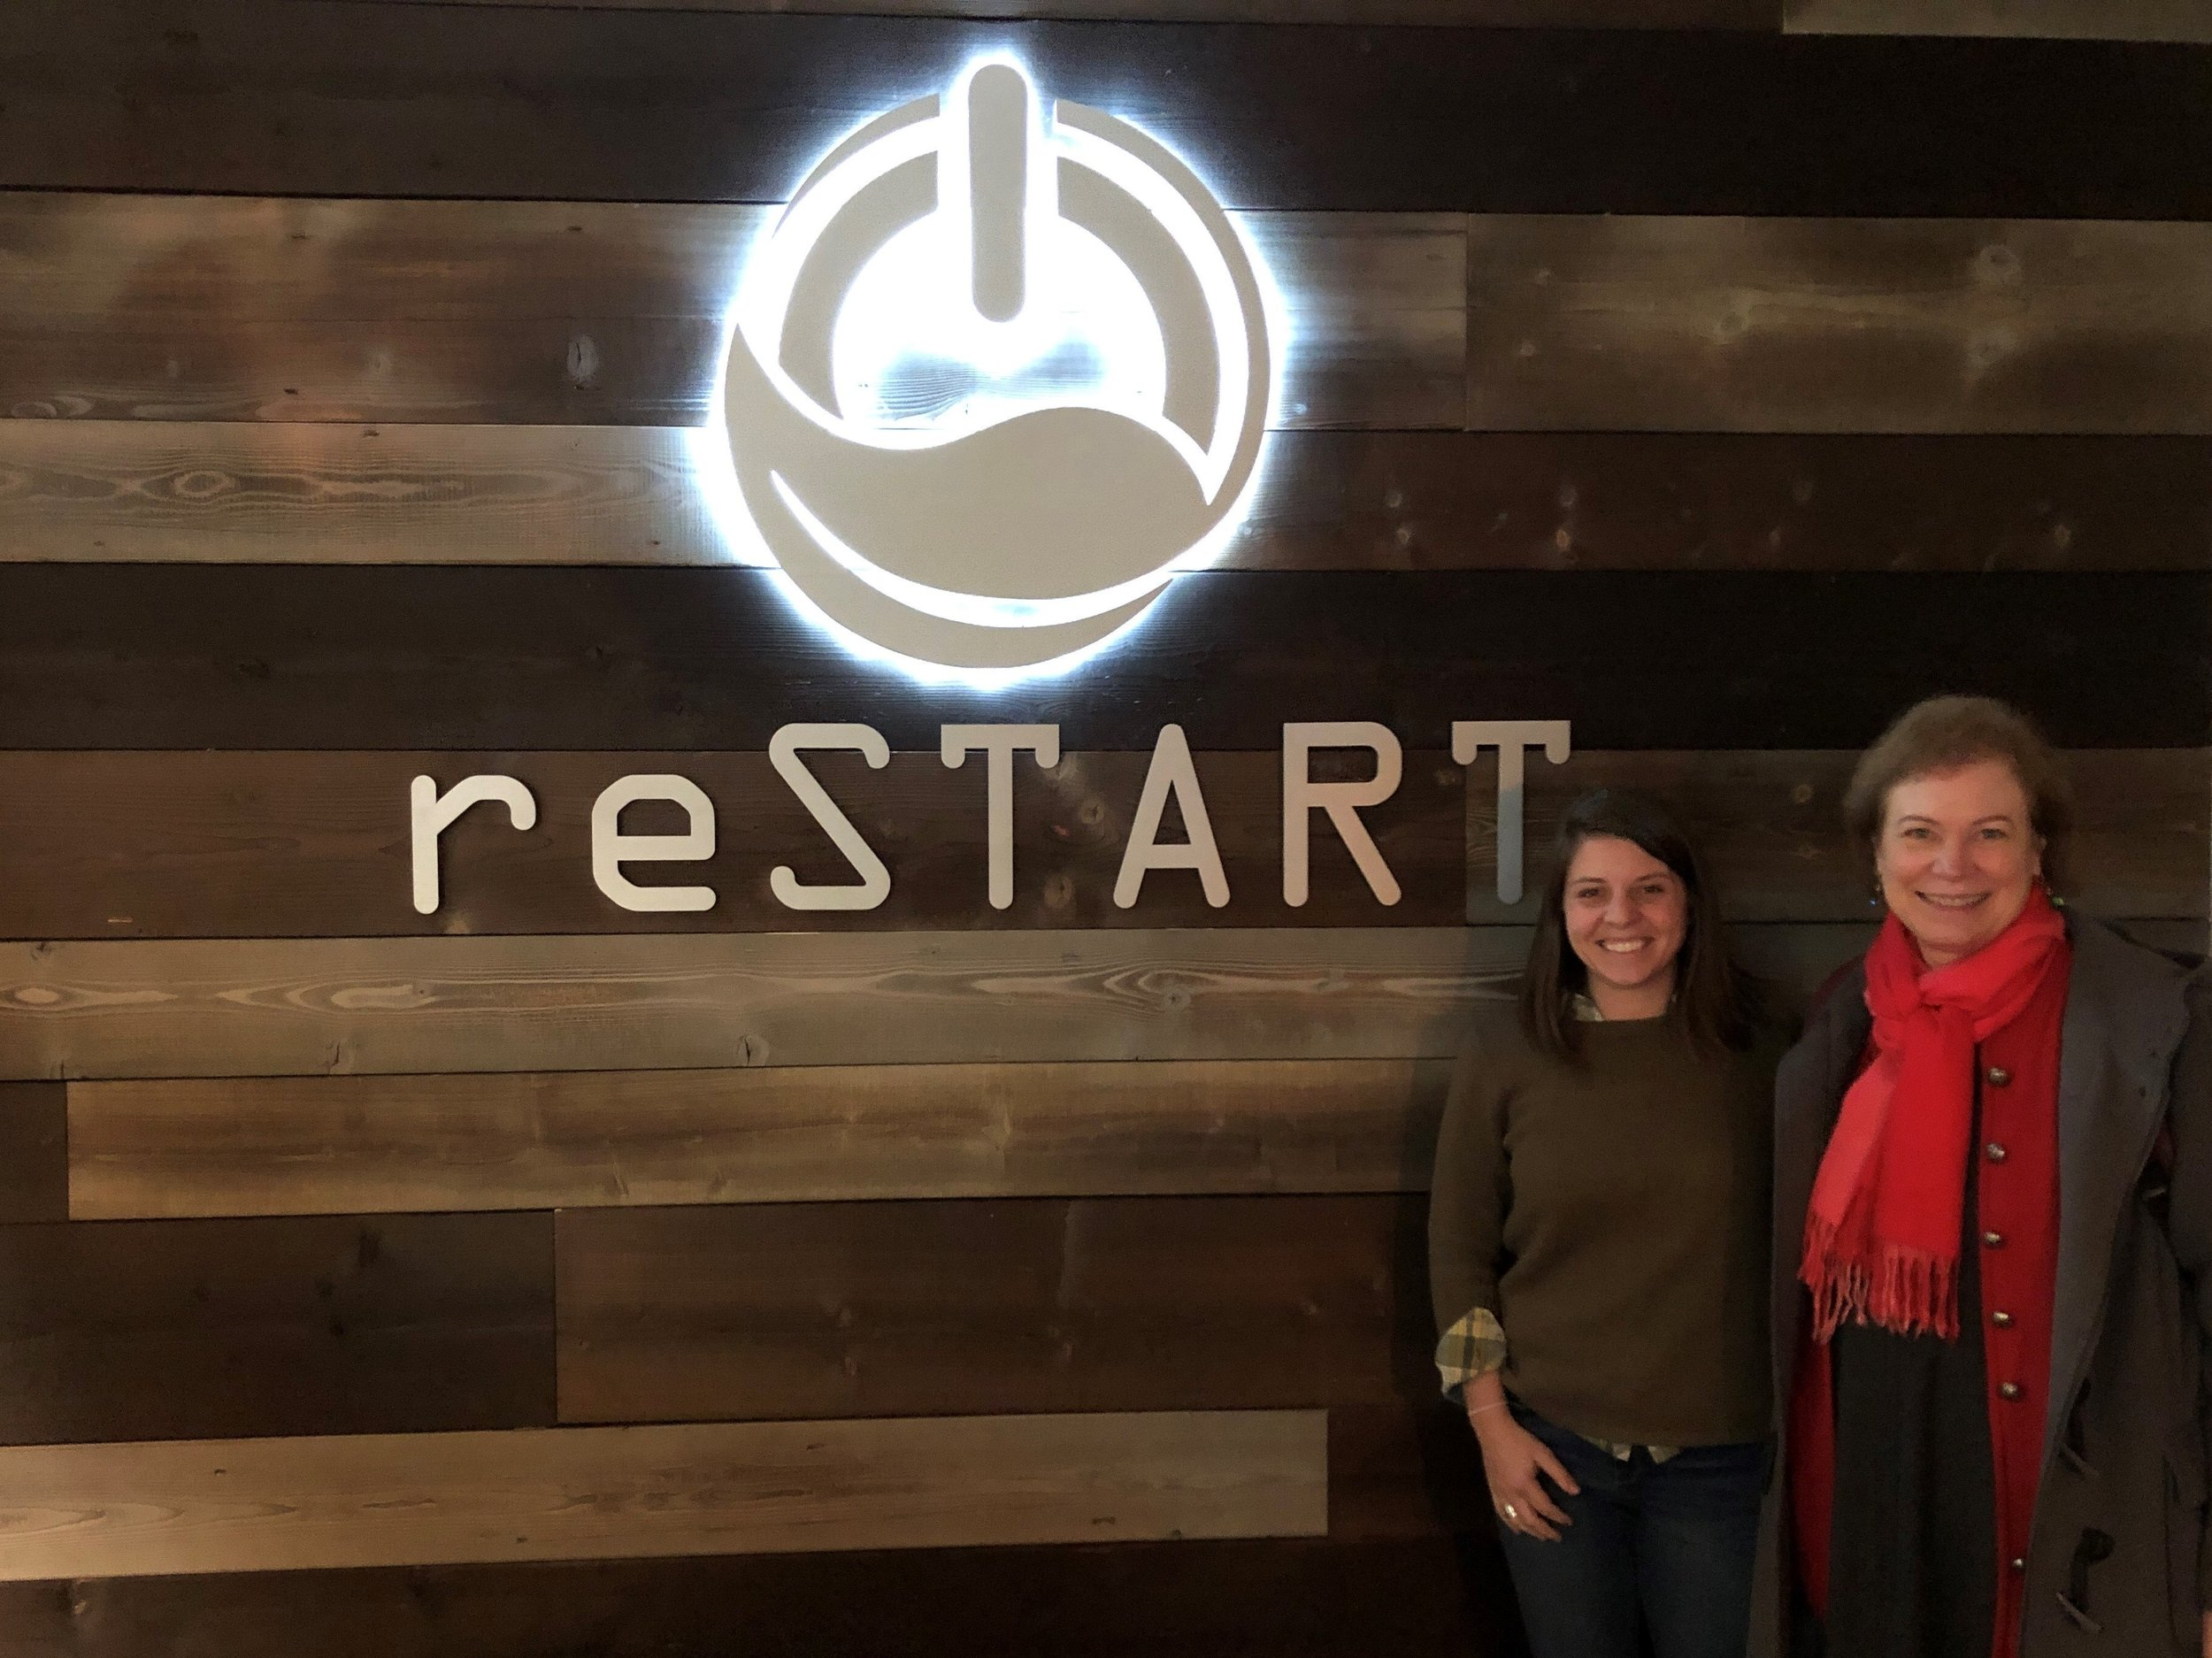 Meeting with Dr. Hilarie Cash of reSTART and touring their new office.